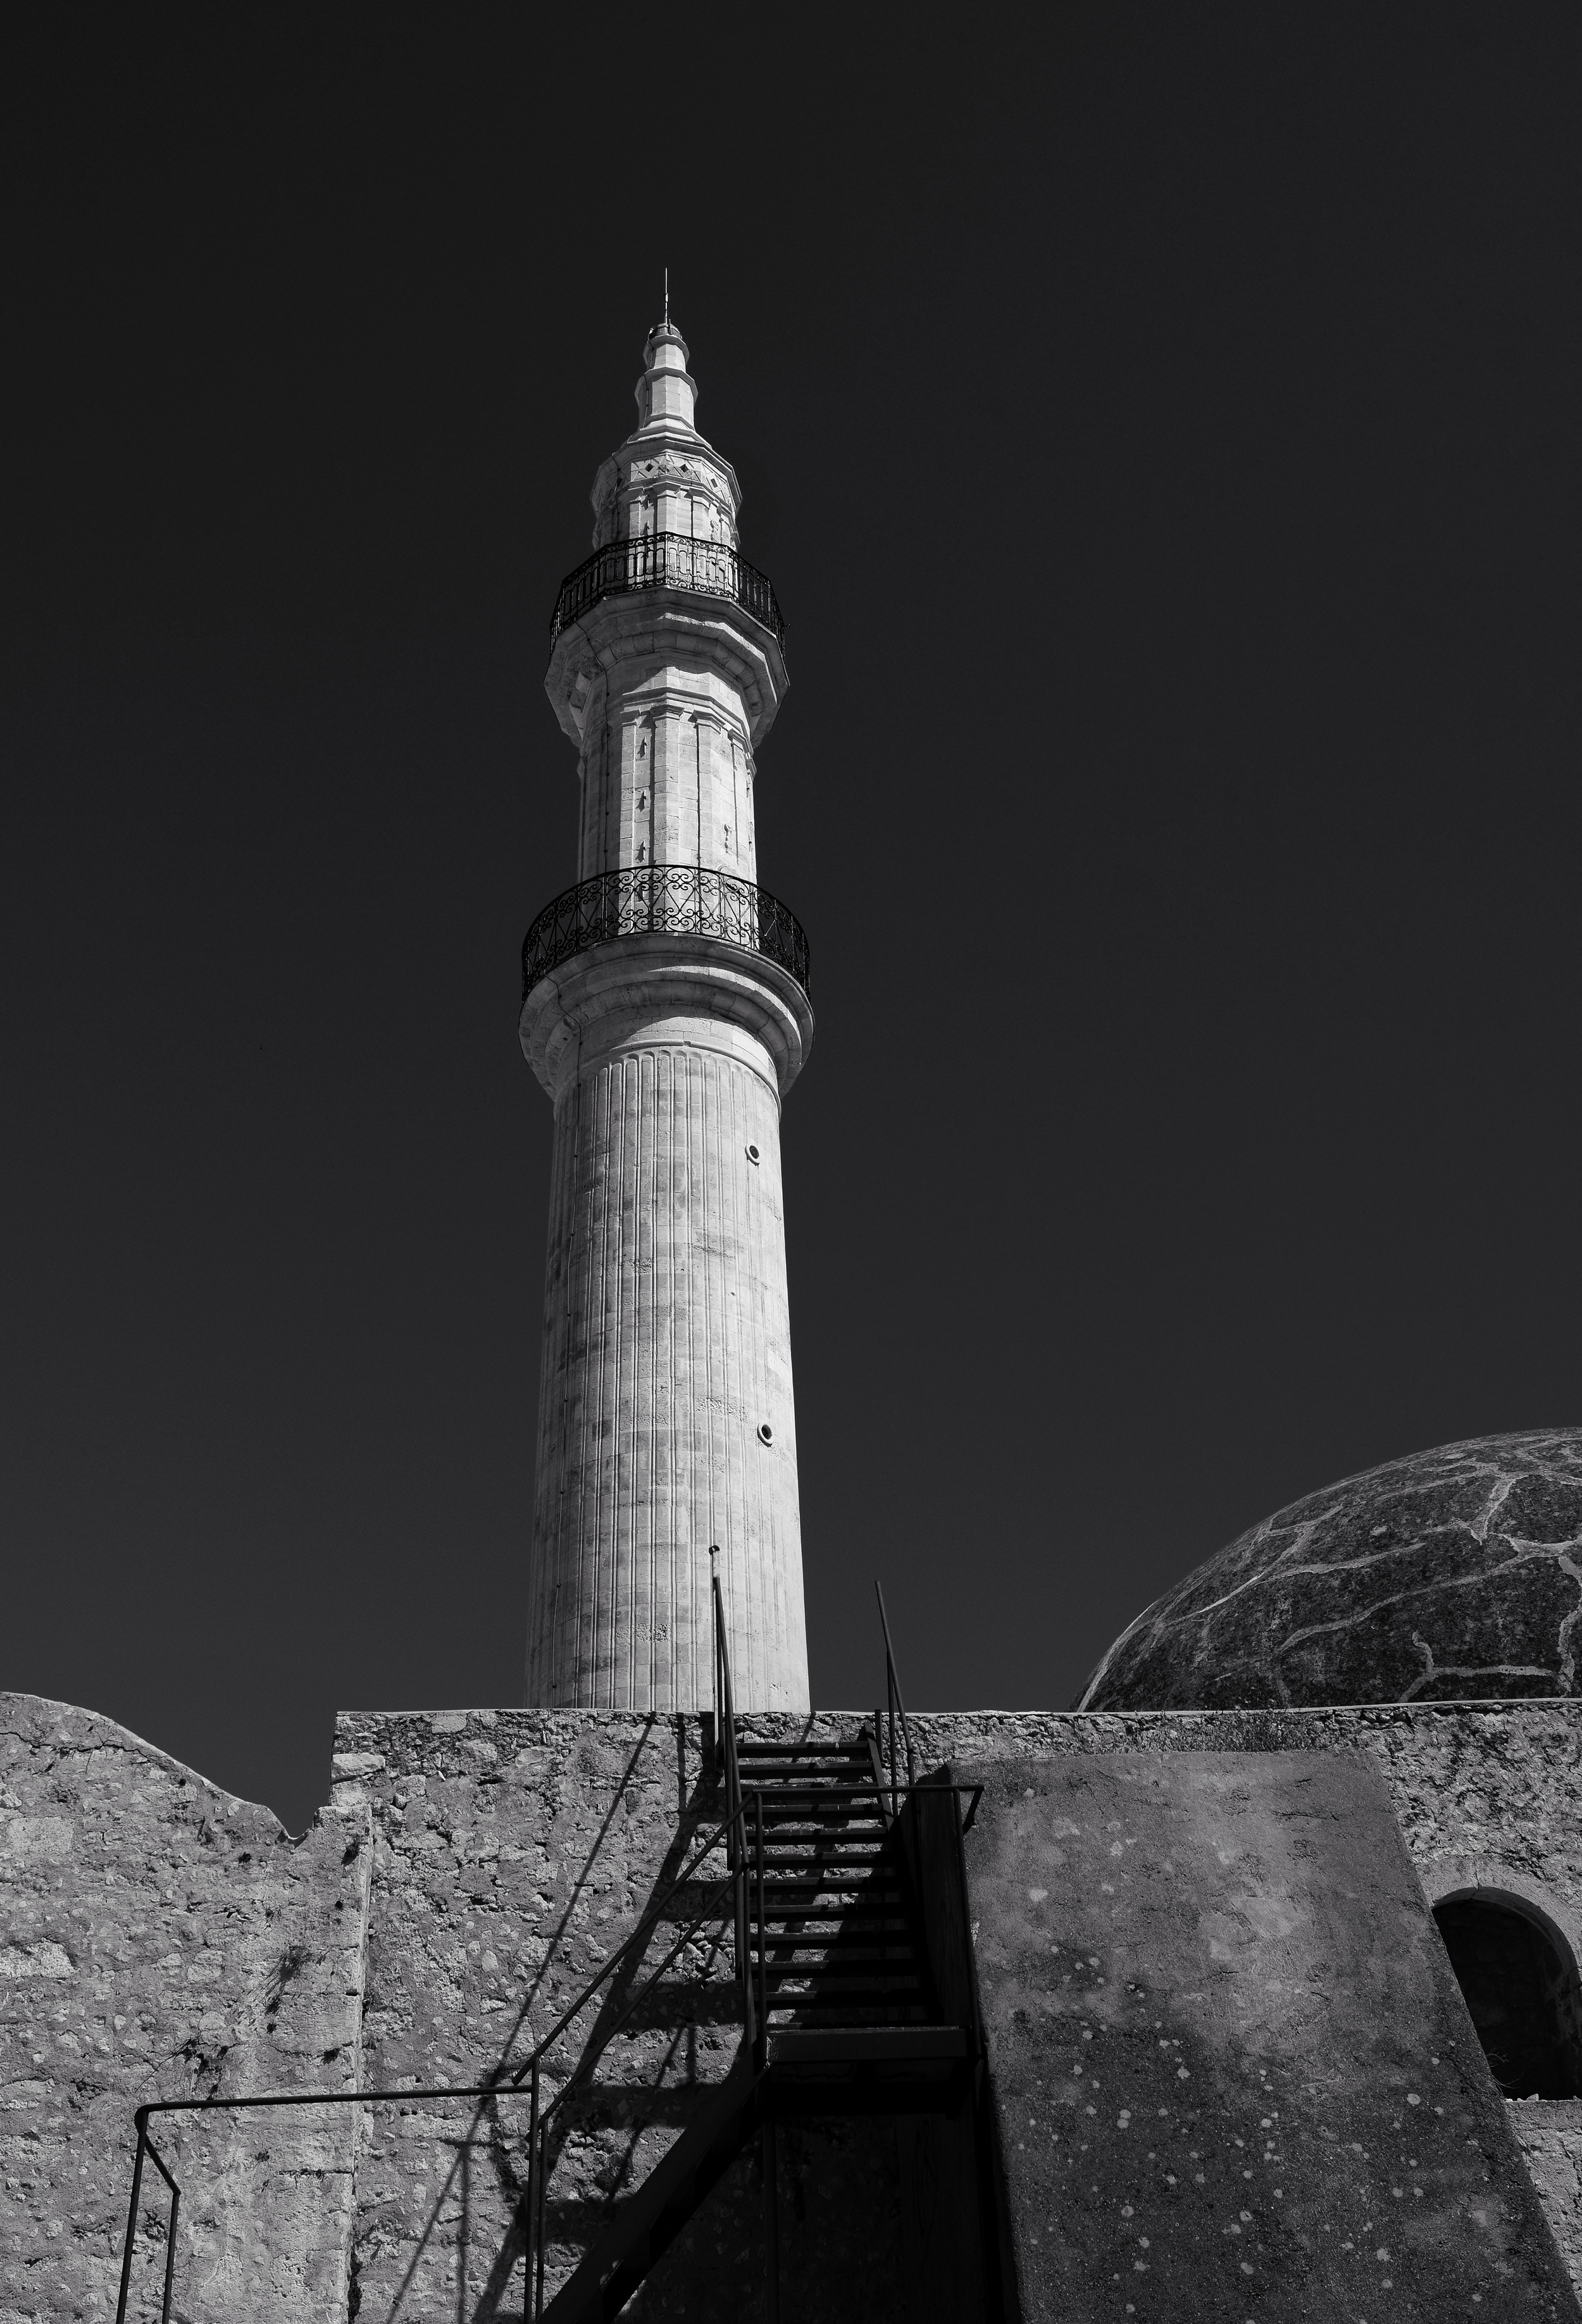 The afternoon sunlight emphasizes the orange colored stone of the Minaret